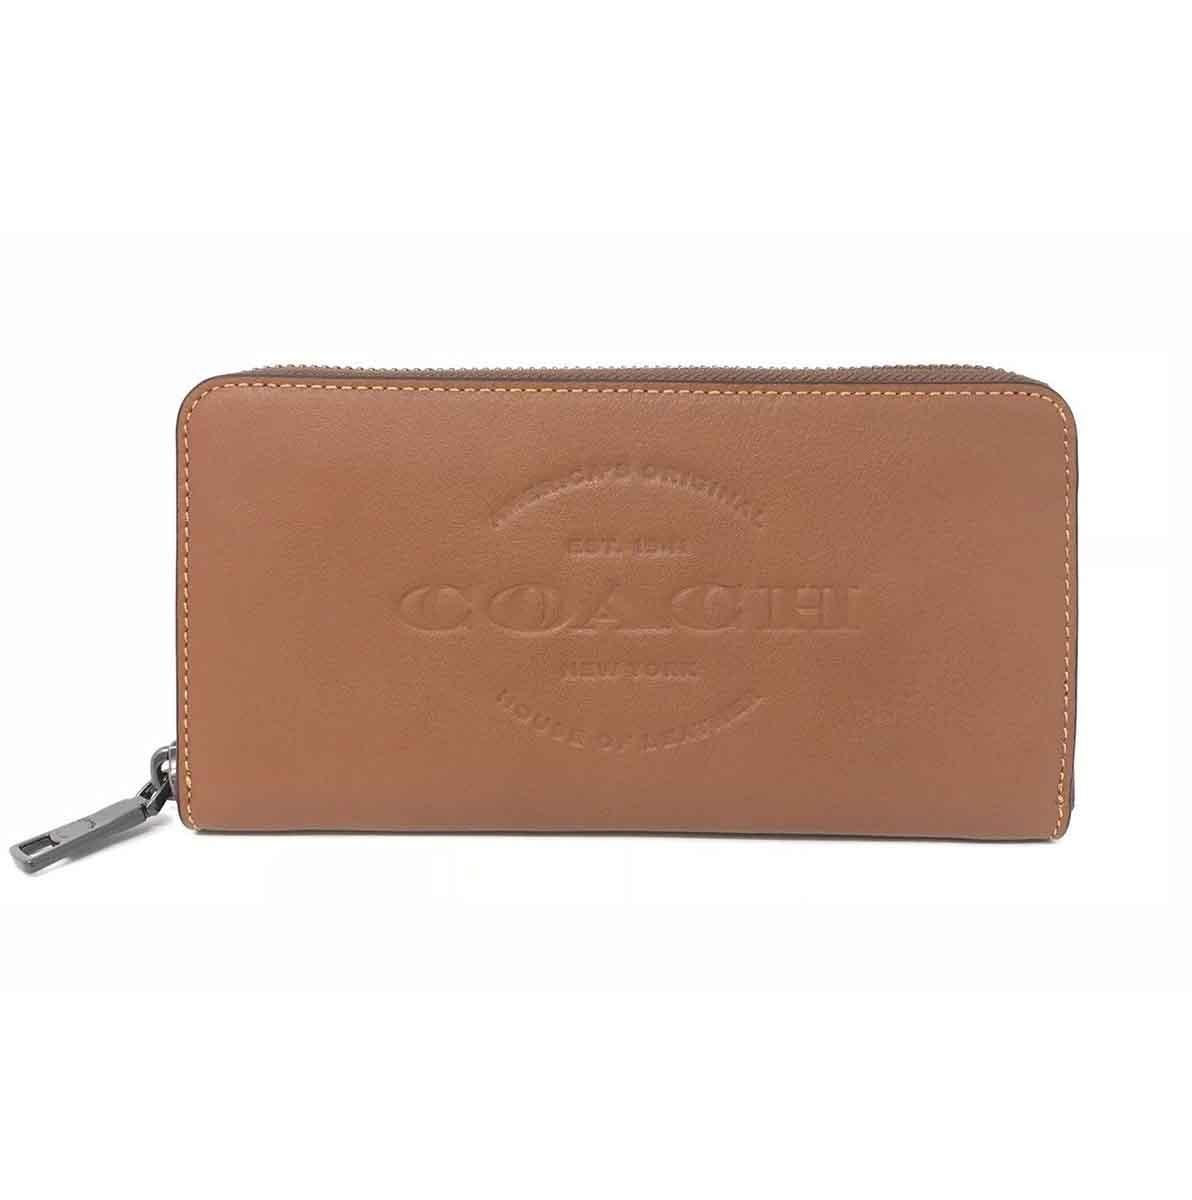 fbbed7ab04b8 ... compact id leather wallet dark saddle f74991 96315 e8729  get coach  coach f24648 mens accordion natural leather saddle wallet 8dcb8 a4e0a